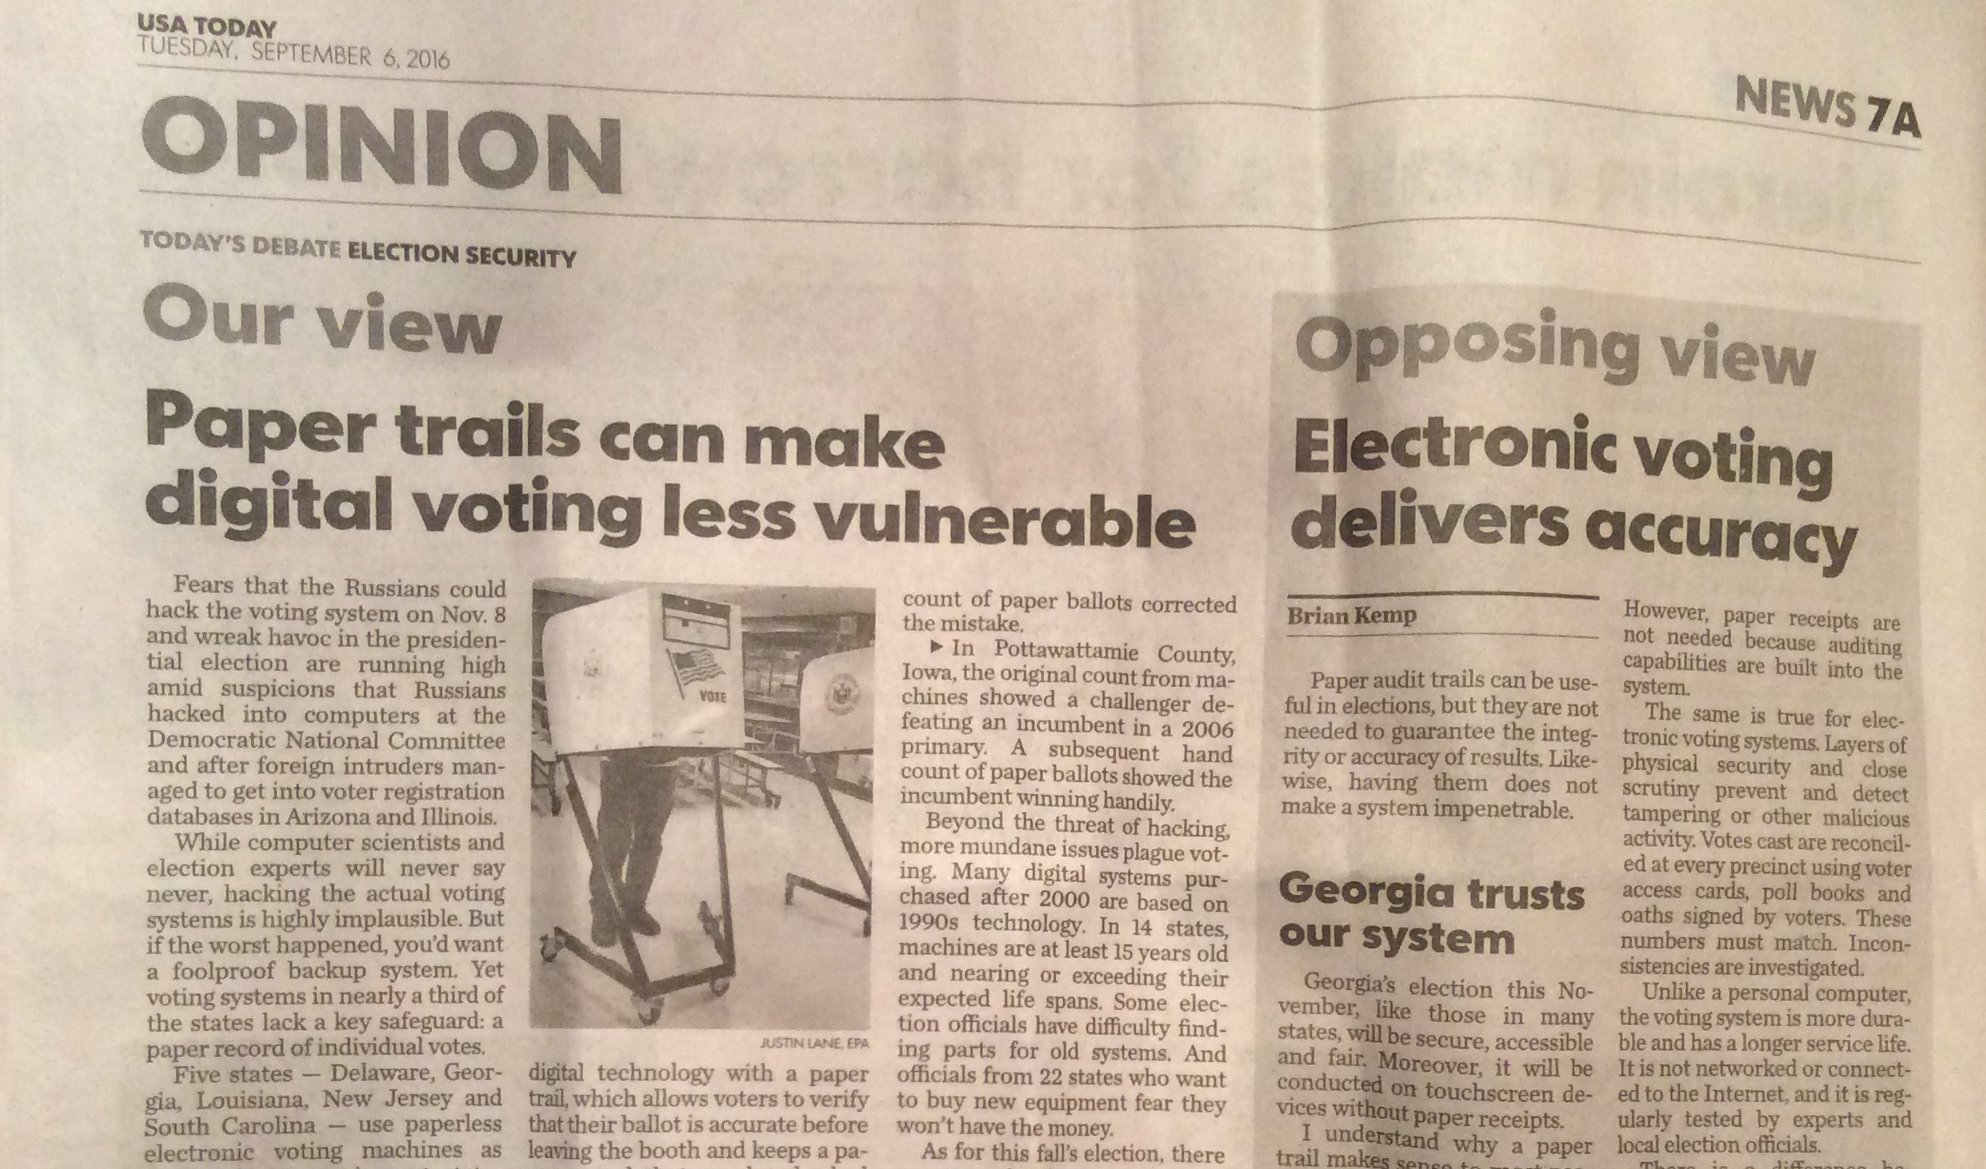 Election security and paper audit trails